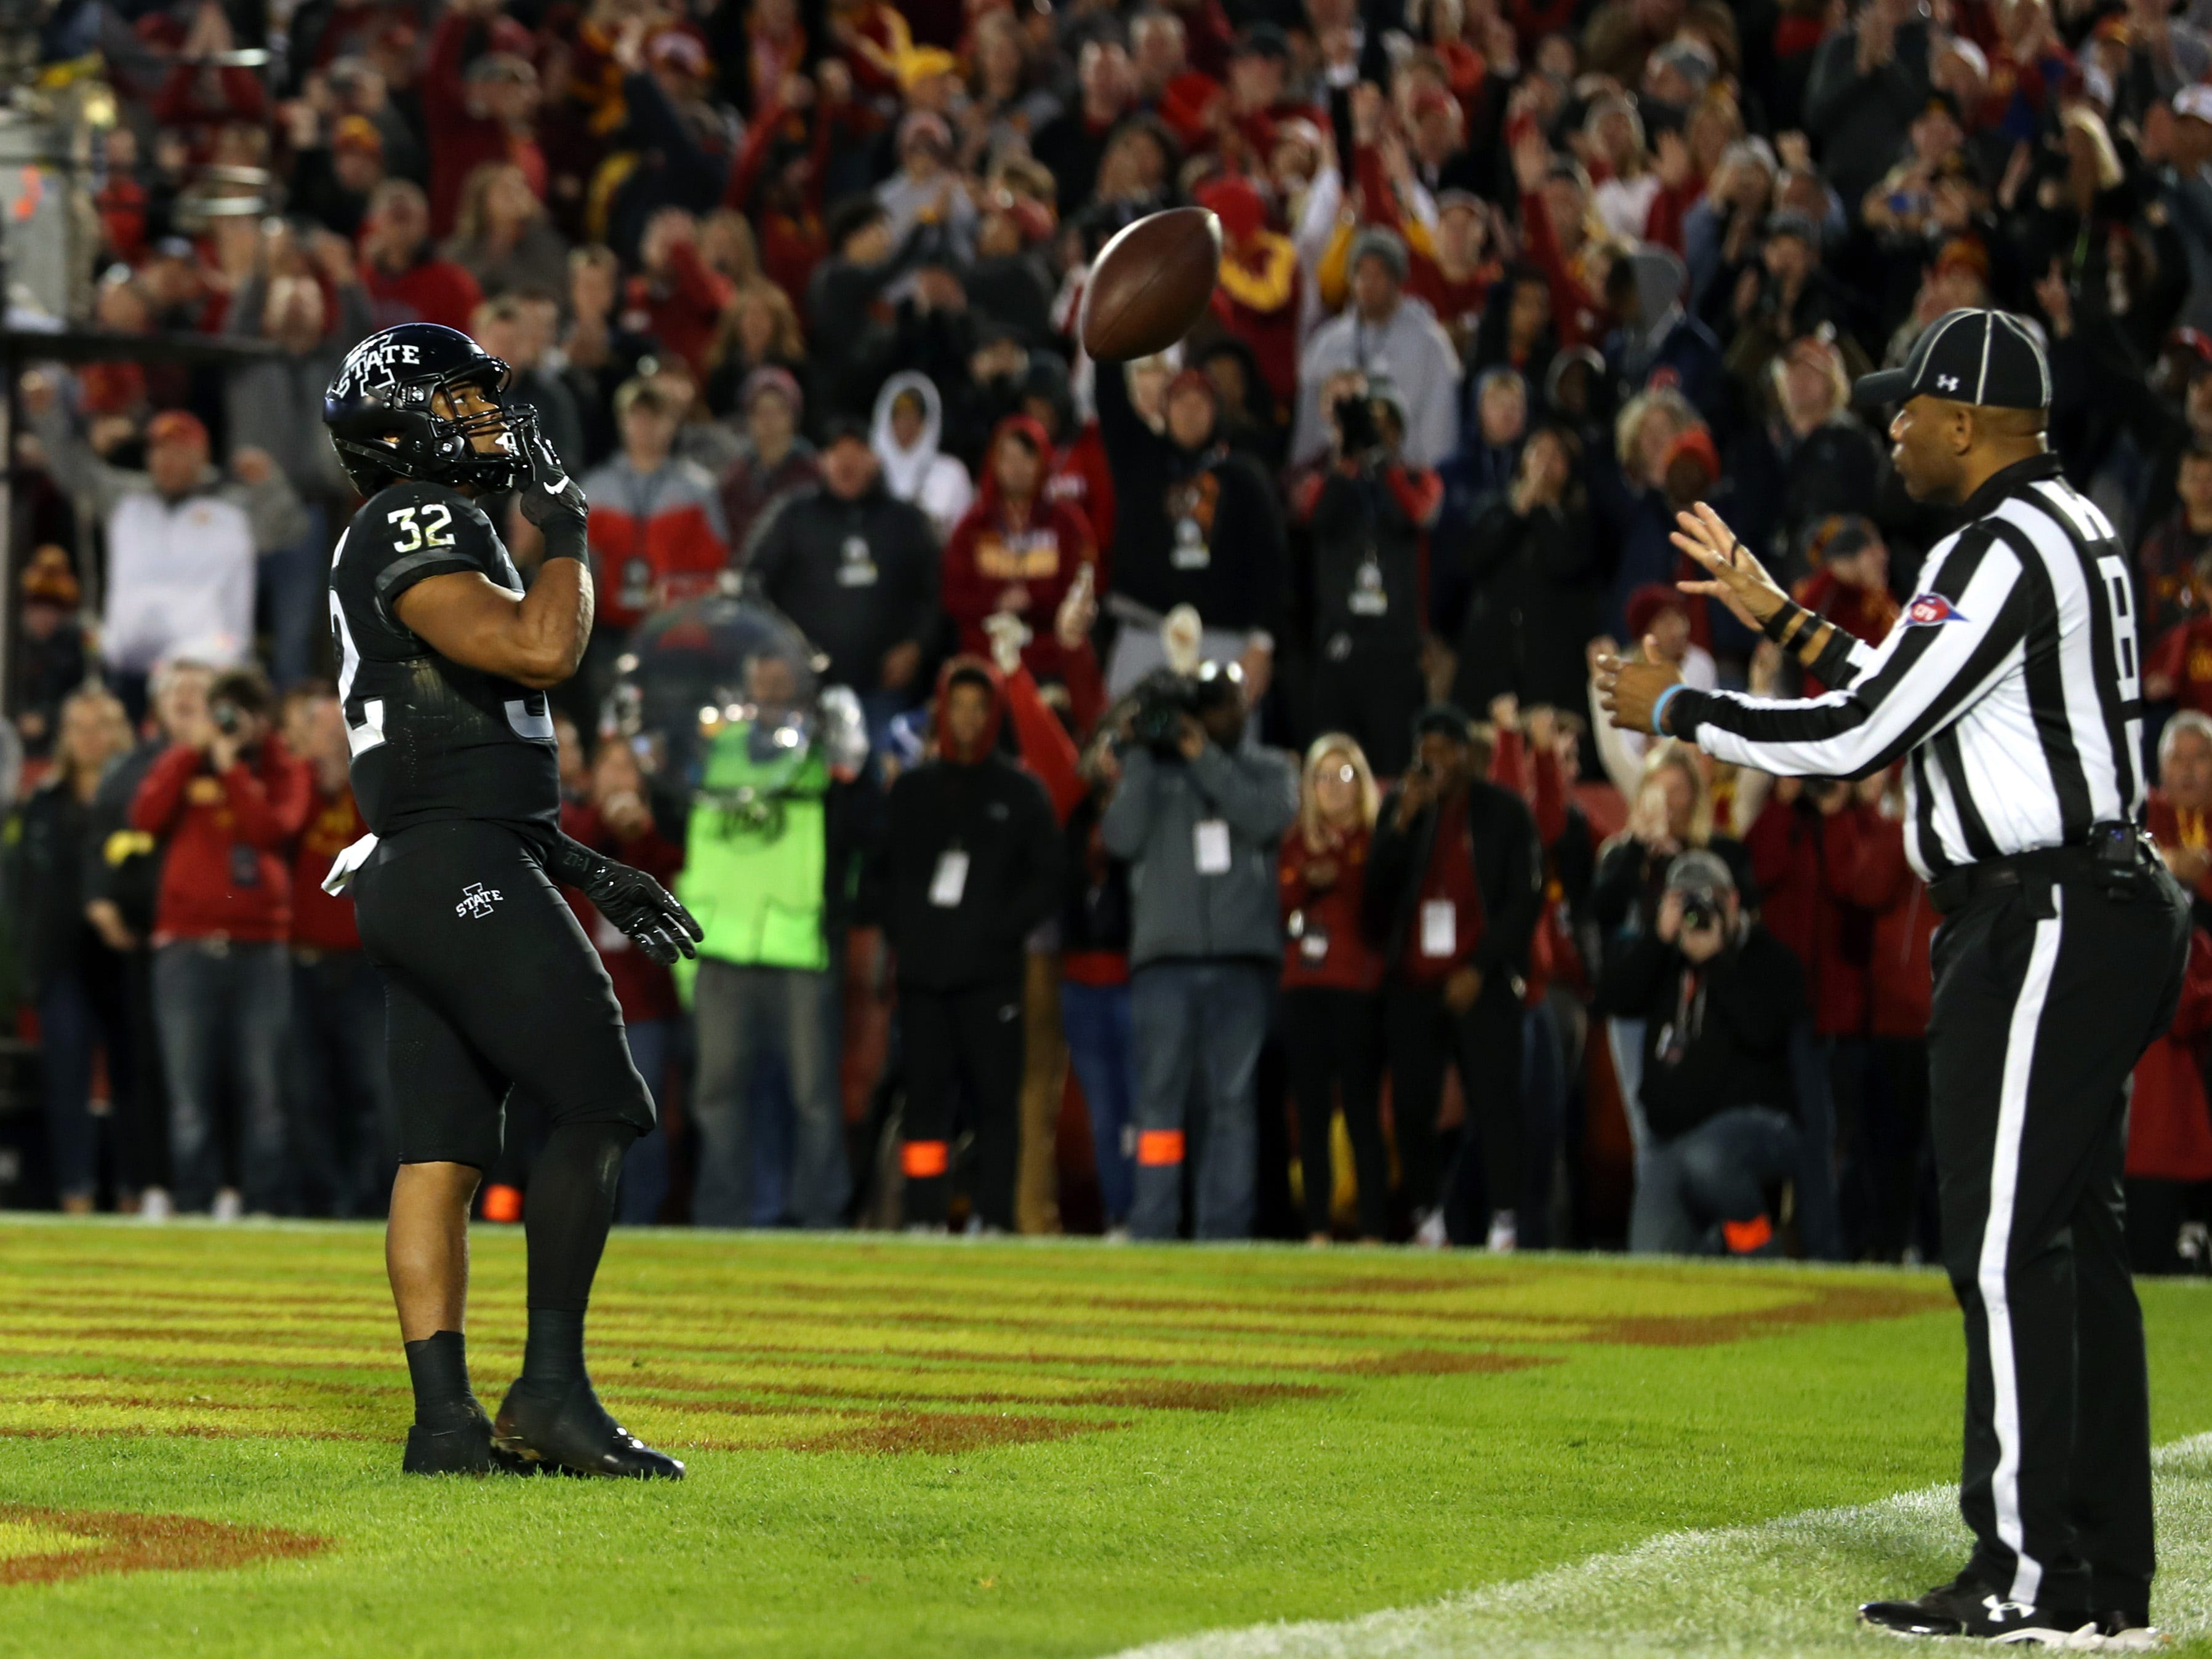 Iowa State Cyclones running back David Montgomery (32) celebrates after scoring a touchdown against the West Virginia Mountaineers at Jack Trice Stadium.